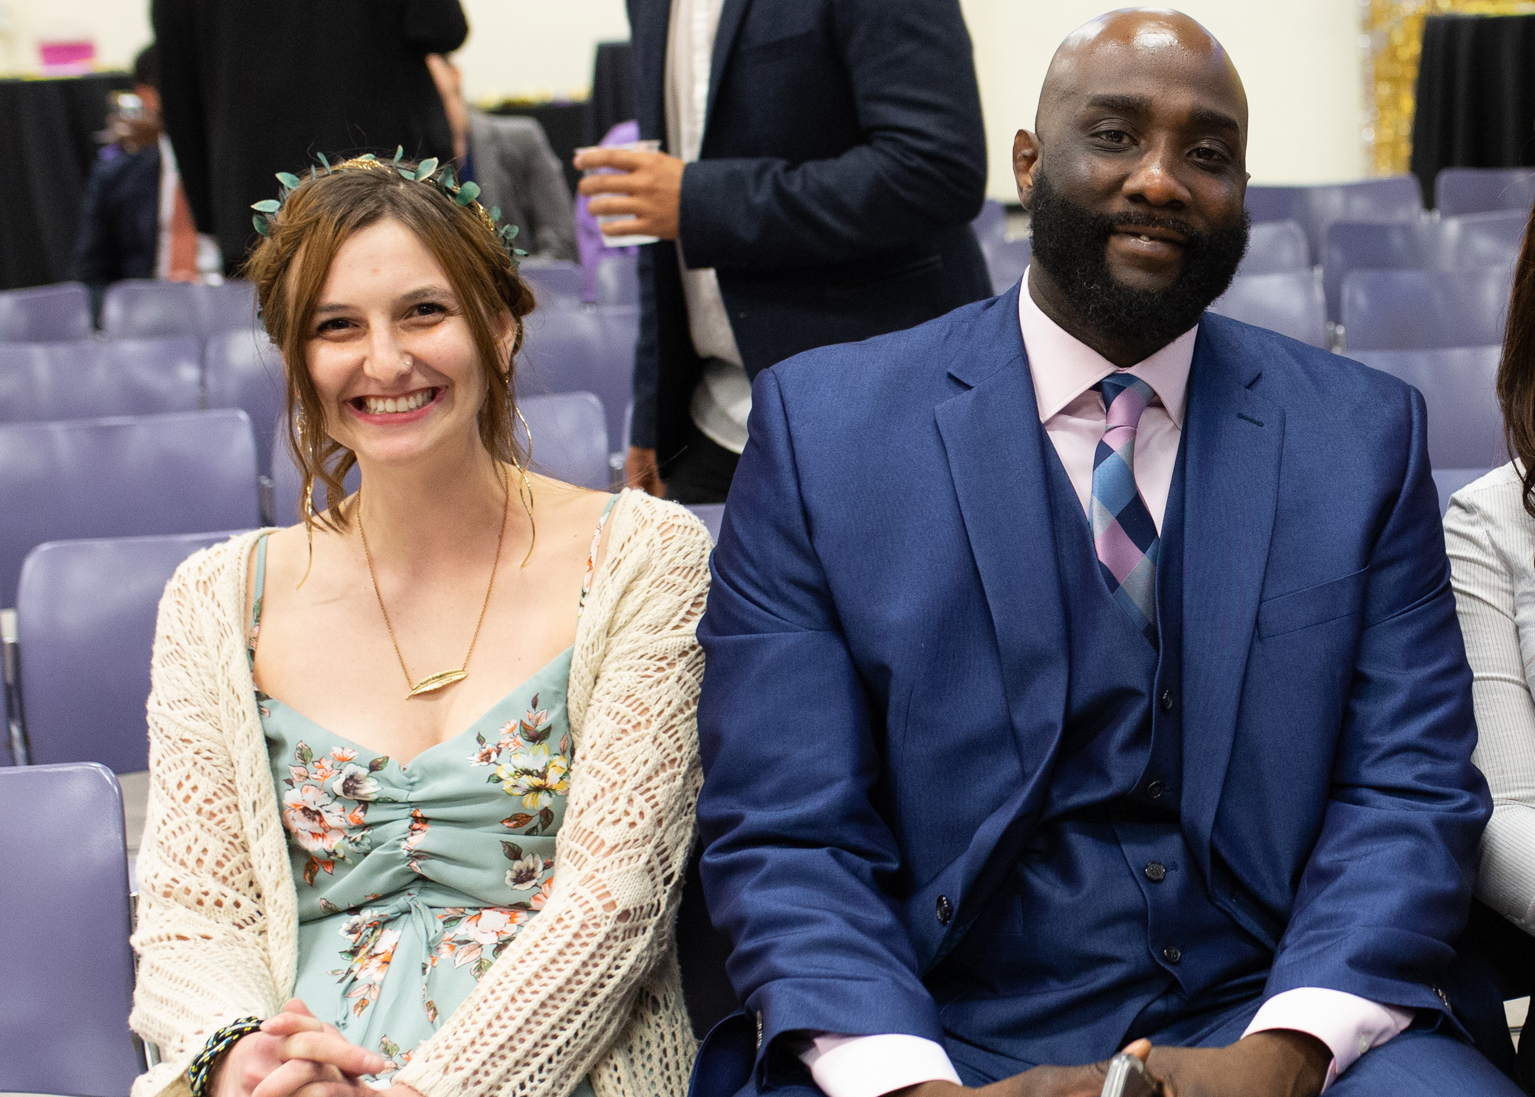 Katya Zinn and Tyrell Dortch are seated next to each other and smiling at the camera.